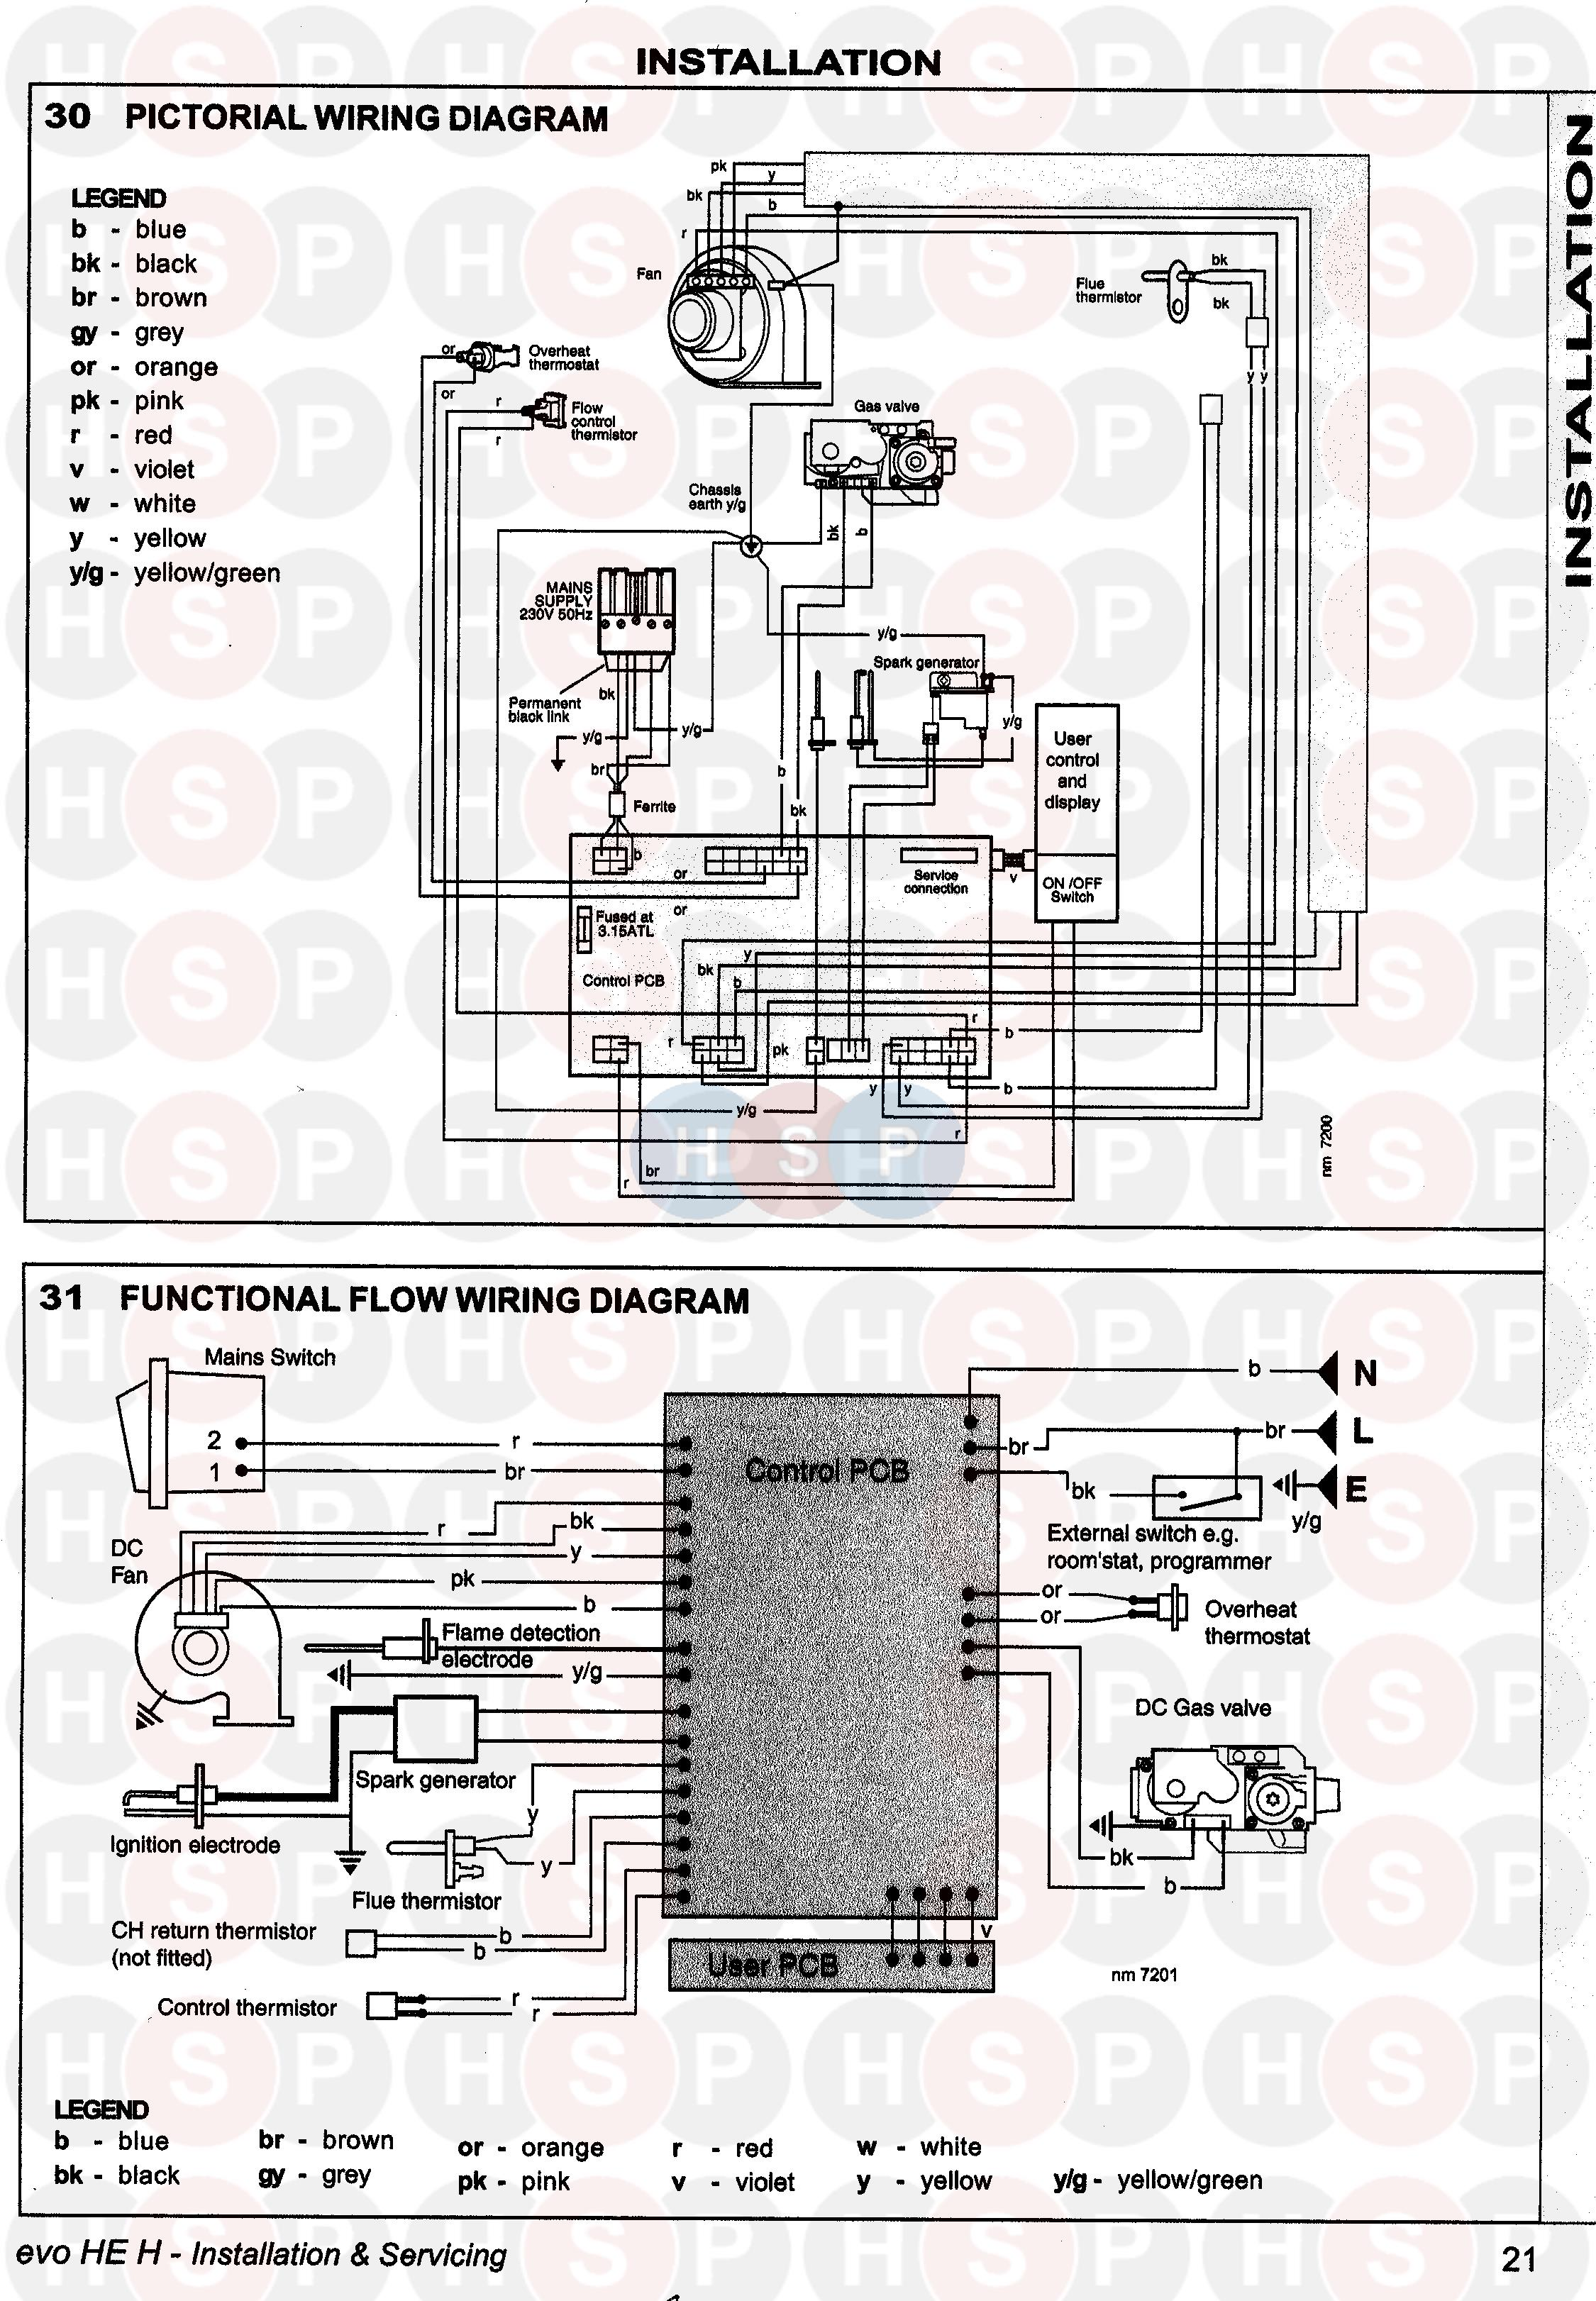 jc 120 evo ignition wiring diagram  | 580 x 750